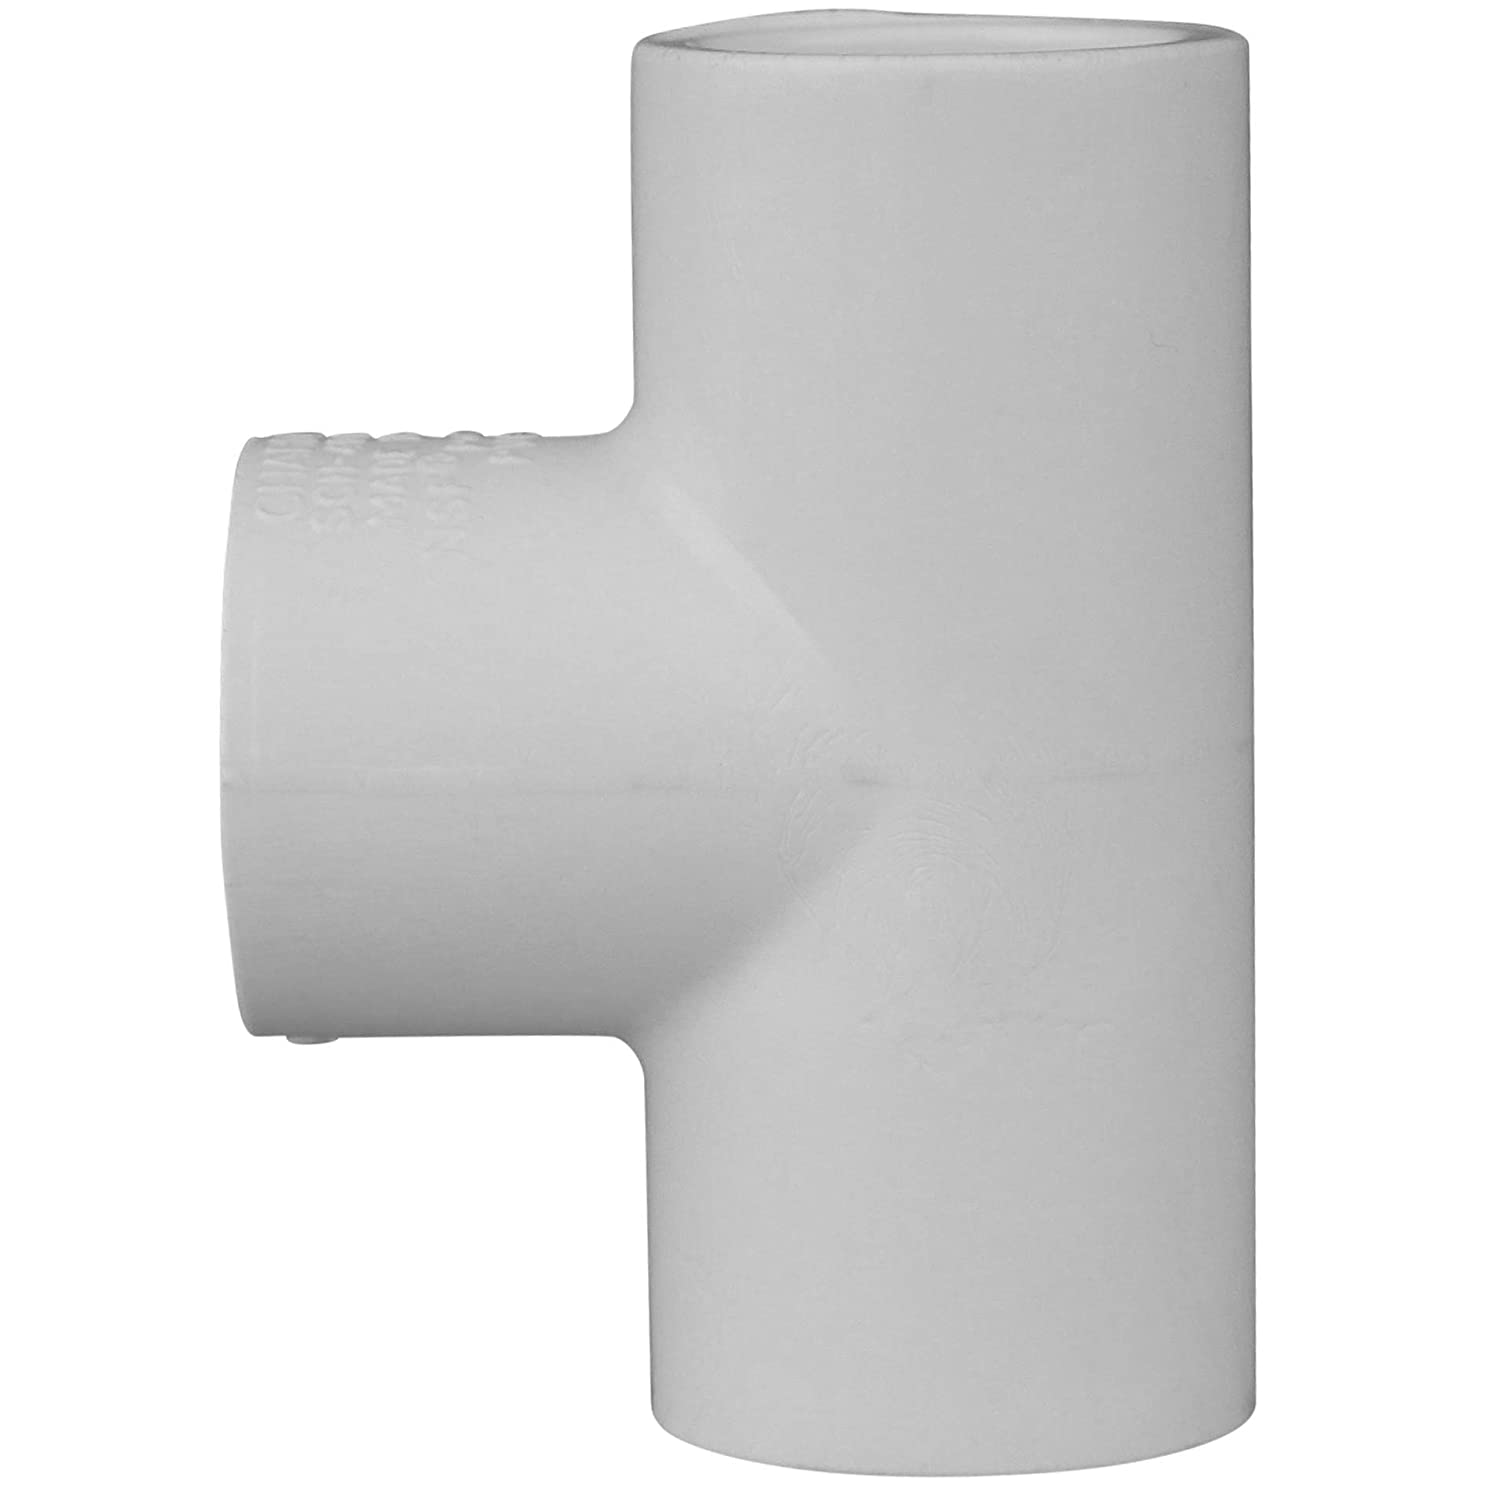 Schedule 40 PVC Pressure Durable Socket x Socket Charlotte Pipe 1 45 Degree Elbow Pipe Fitting - High Tensile and Sound Deadening for Home or Industrial Use Easy to Install 25 Unit Box